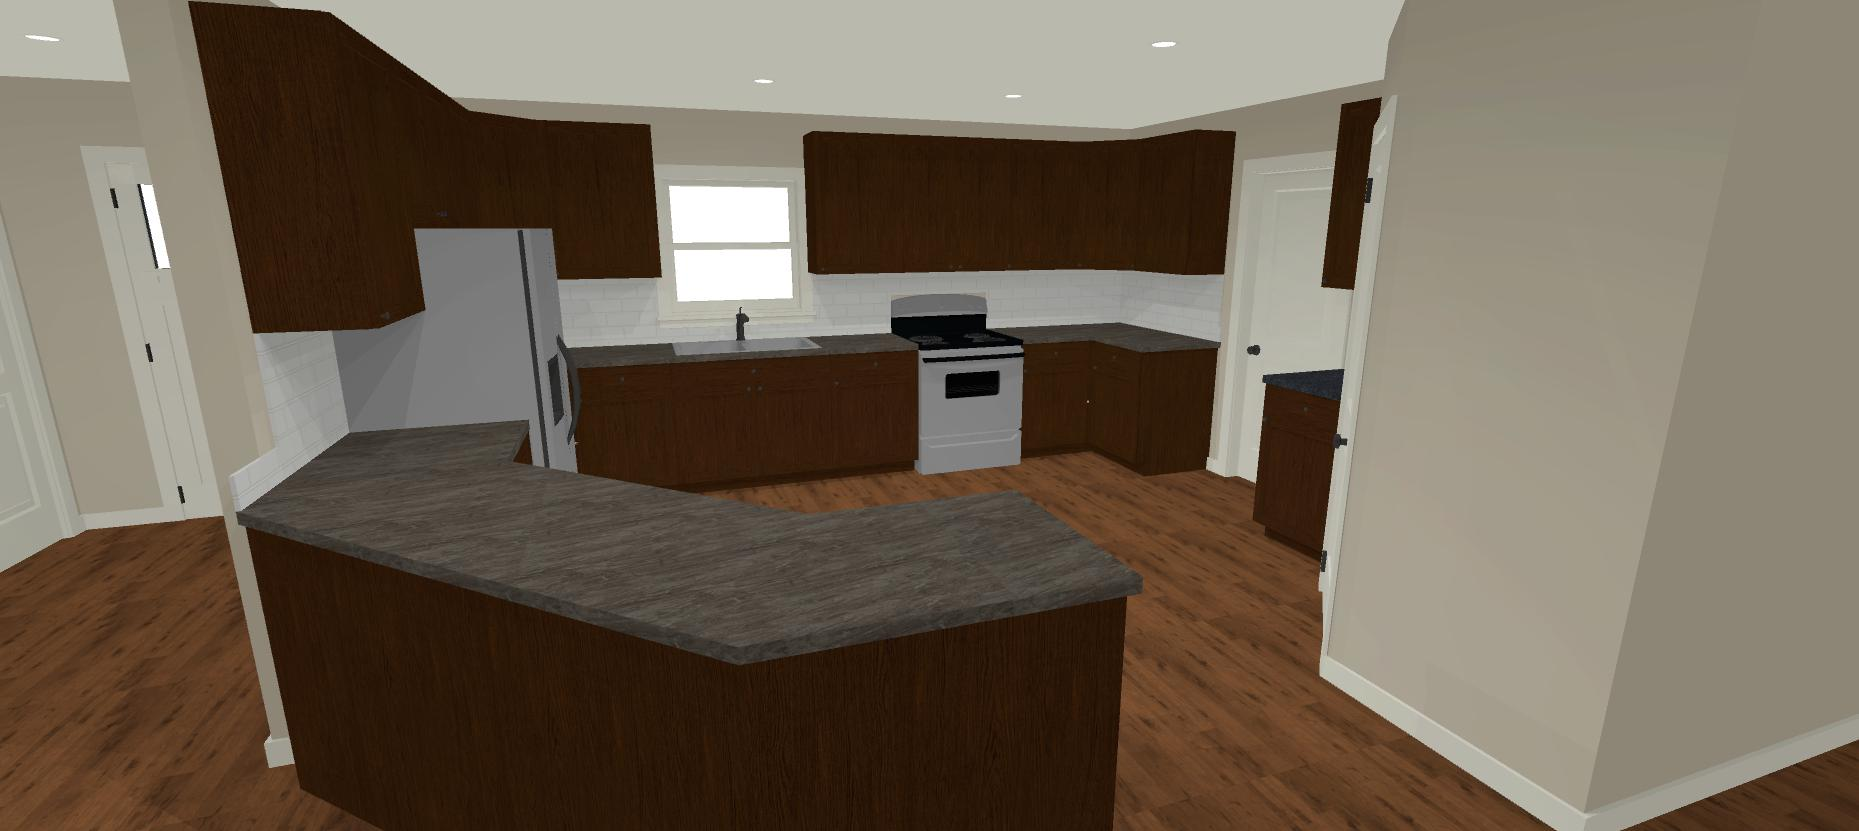 Bettendorf Kitchen.jpg